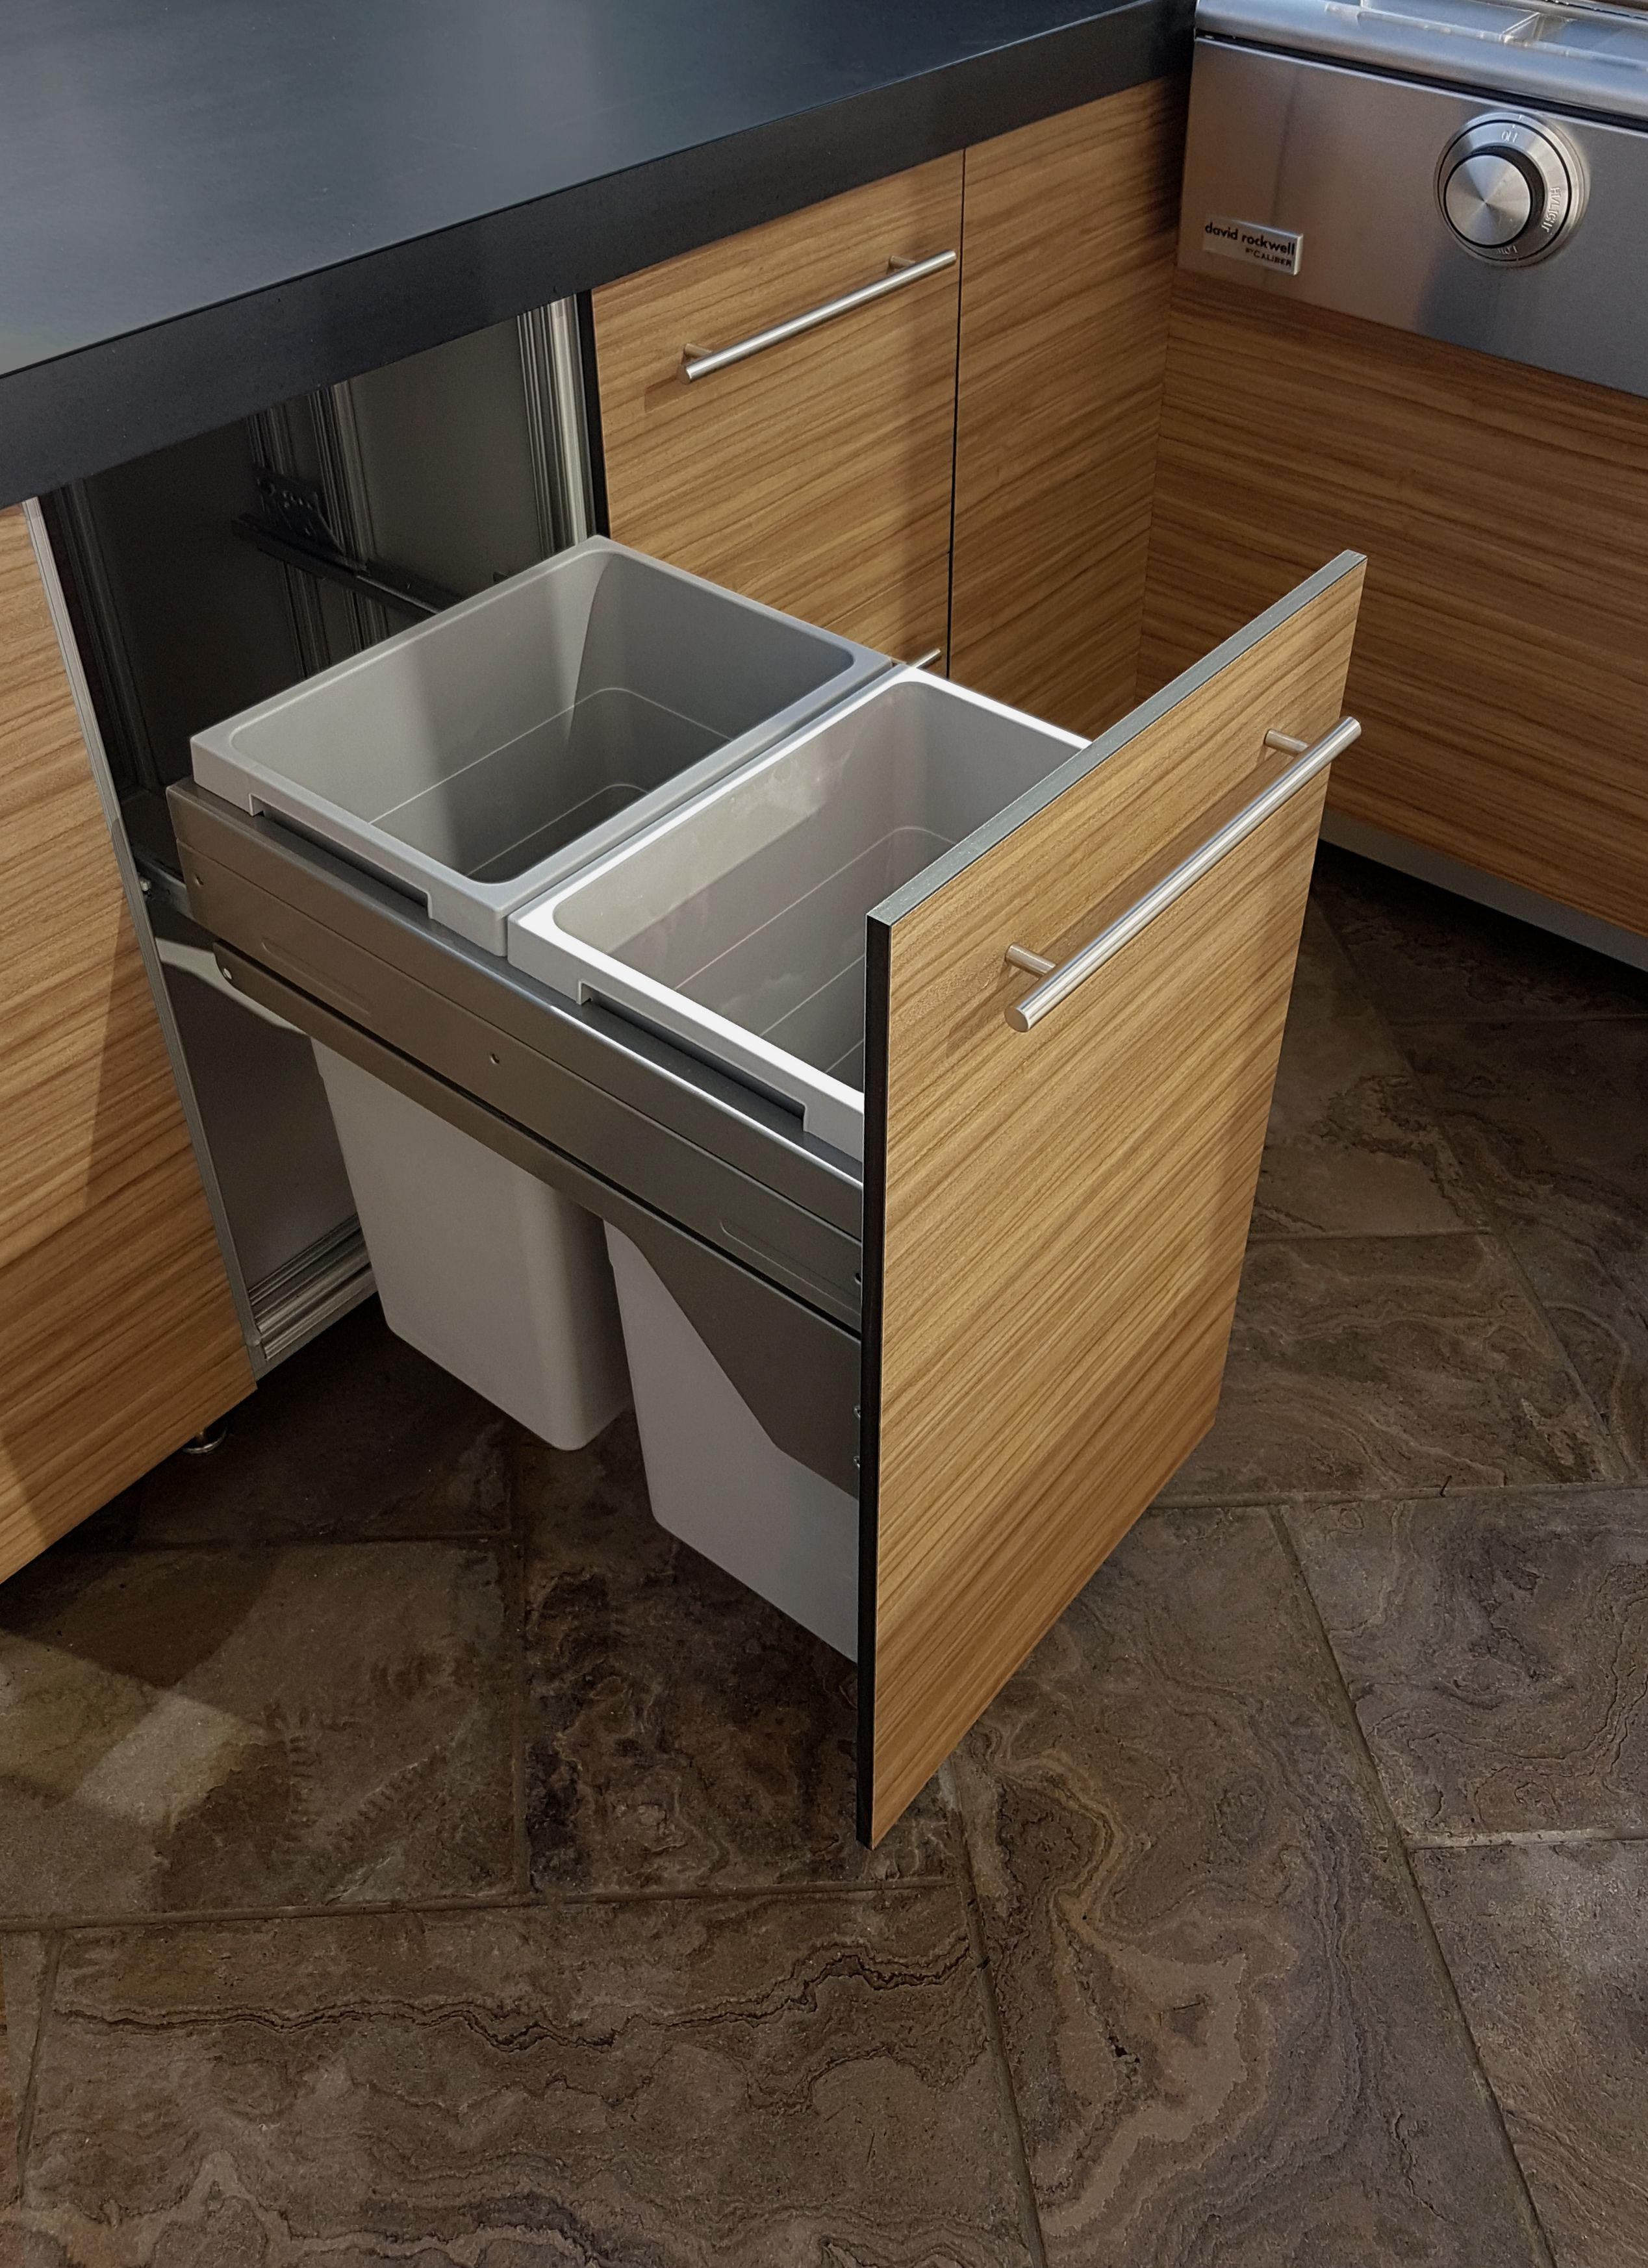 Built In Waste Recycling Drawer Outdoor Kitchen Cabinetry Outdoor Kitchen Built In Pantry Kitchen Cabinetry